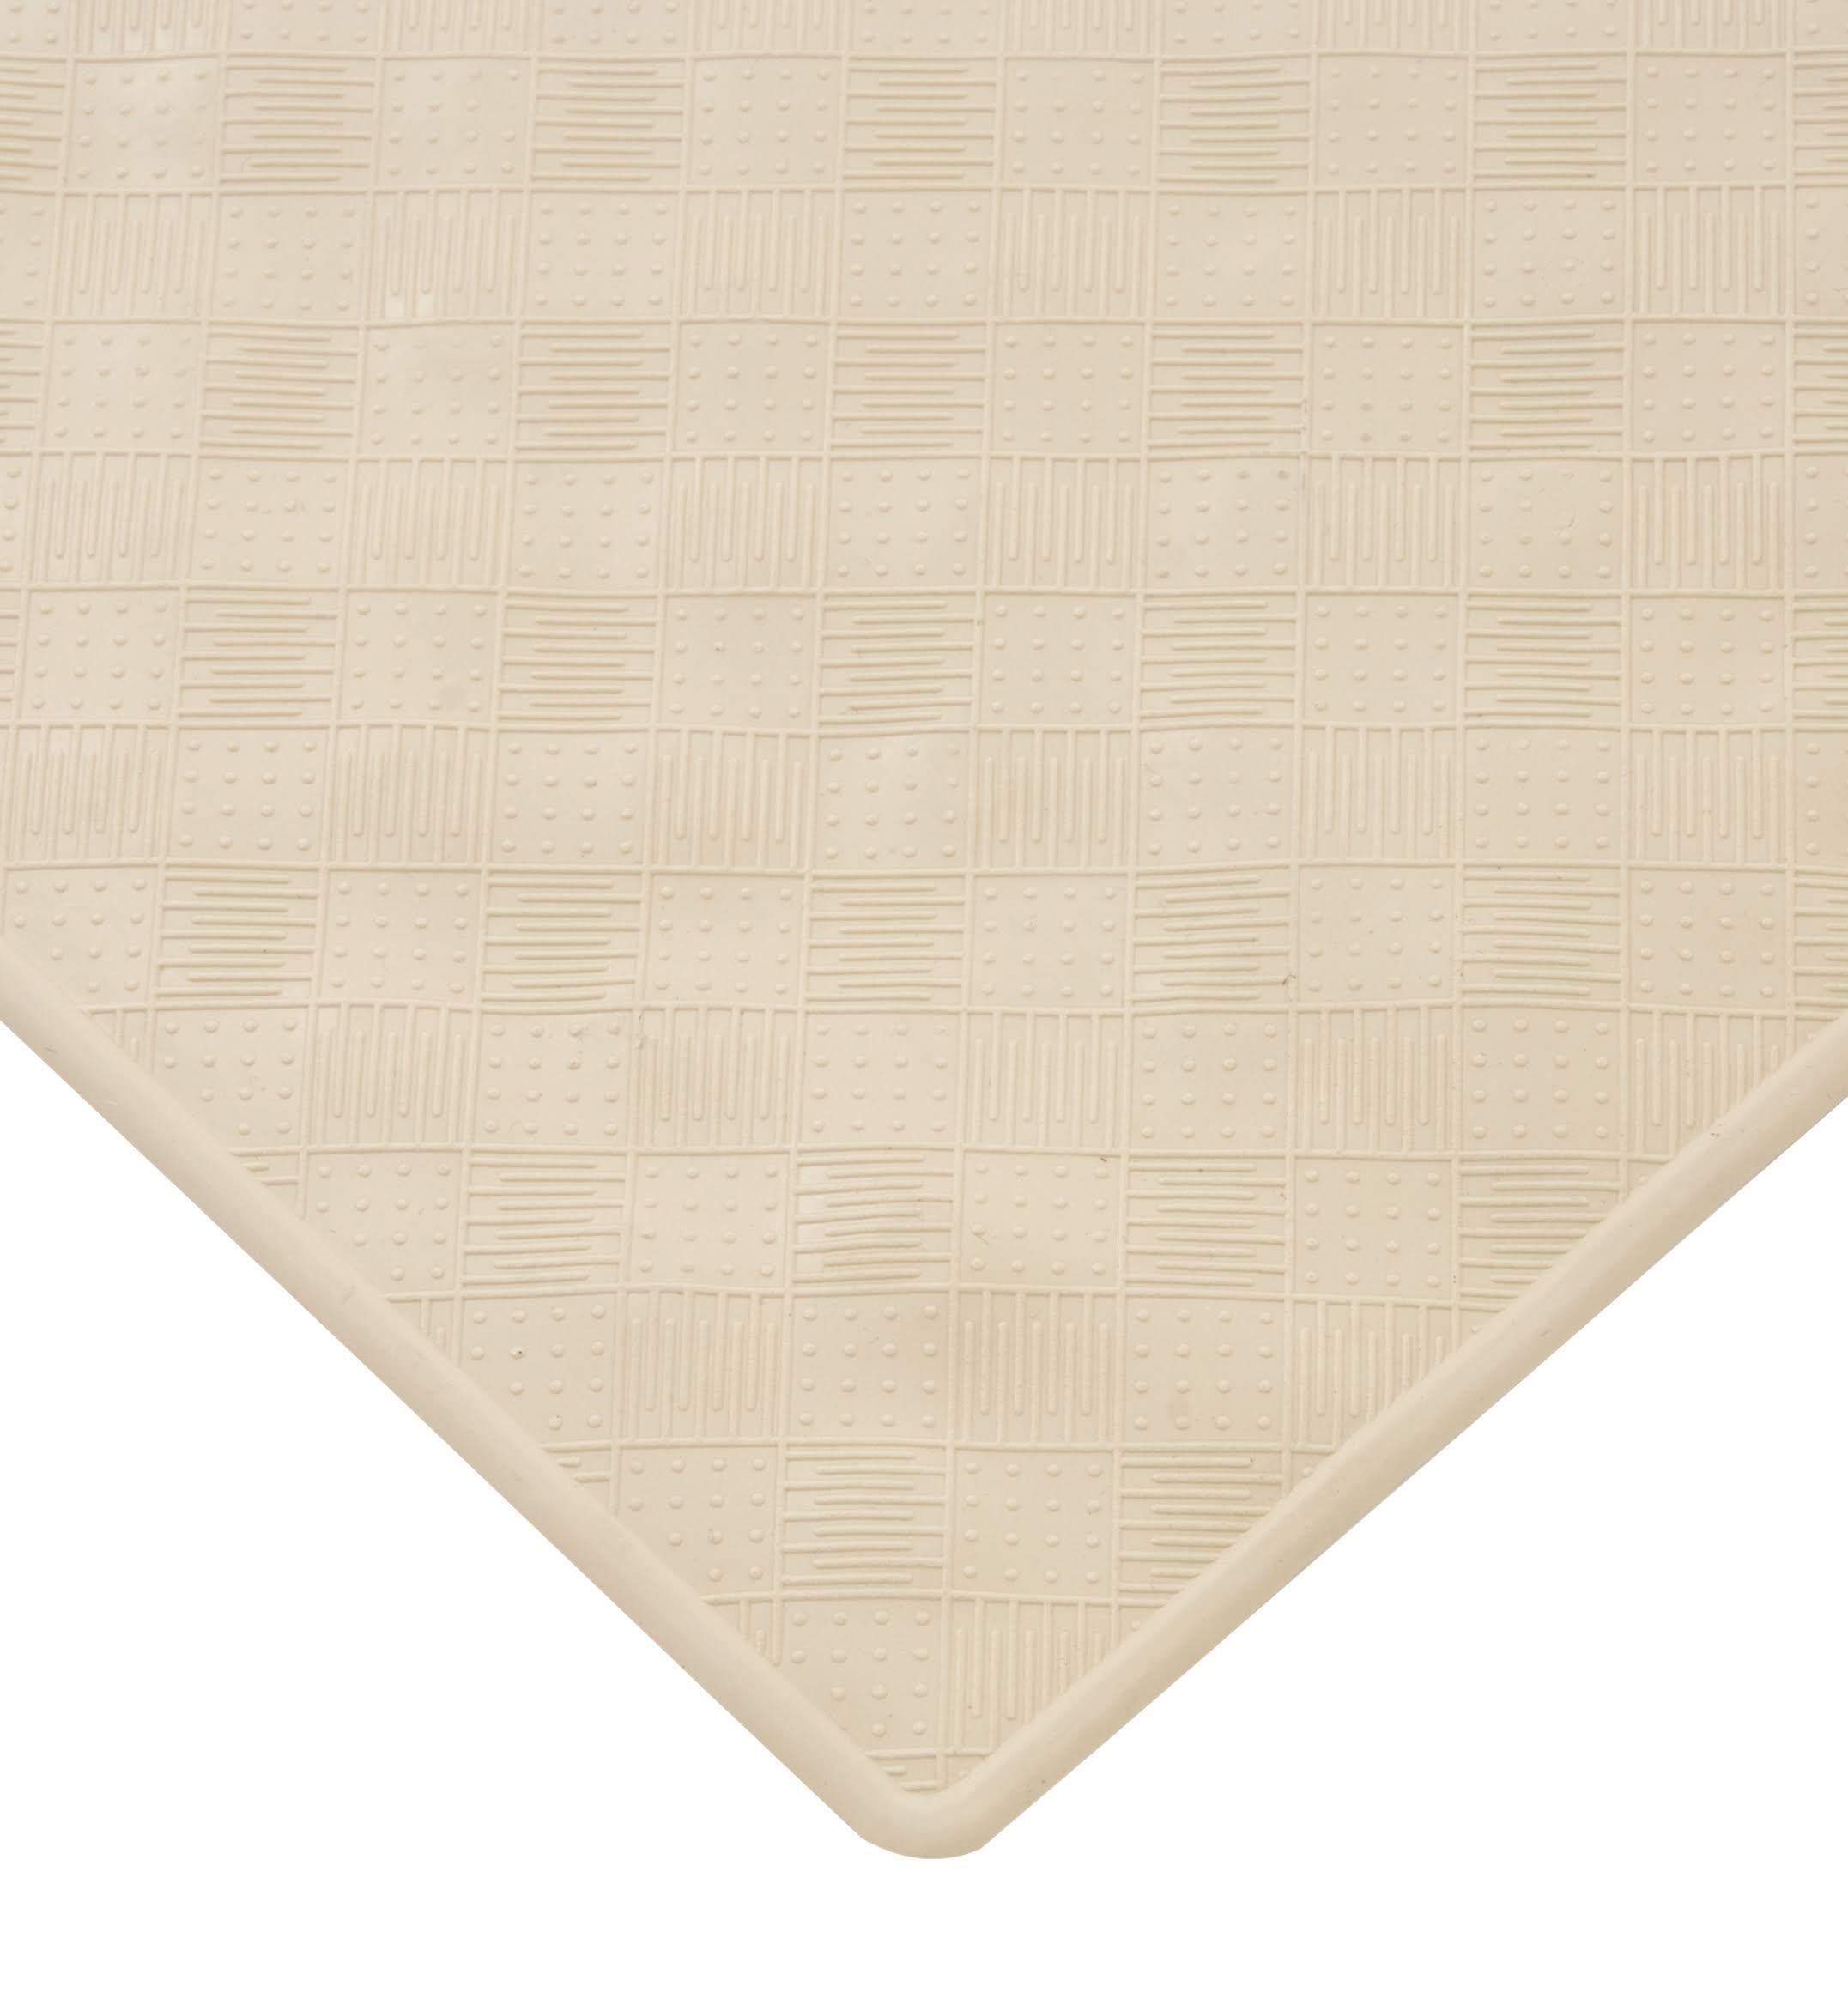 Kenney Rubber Bath Mat Cream